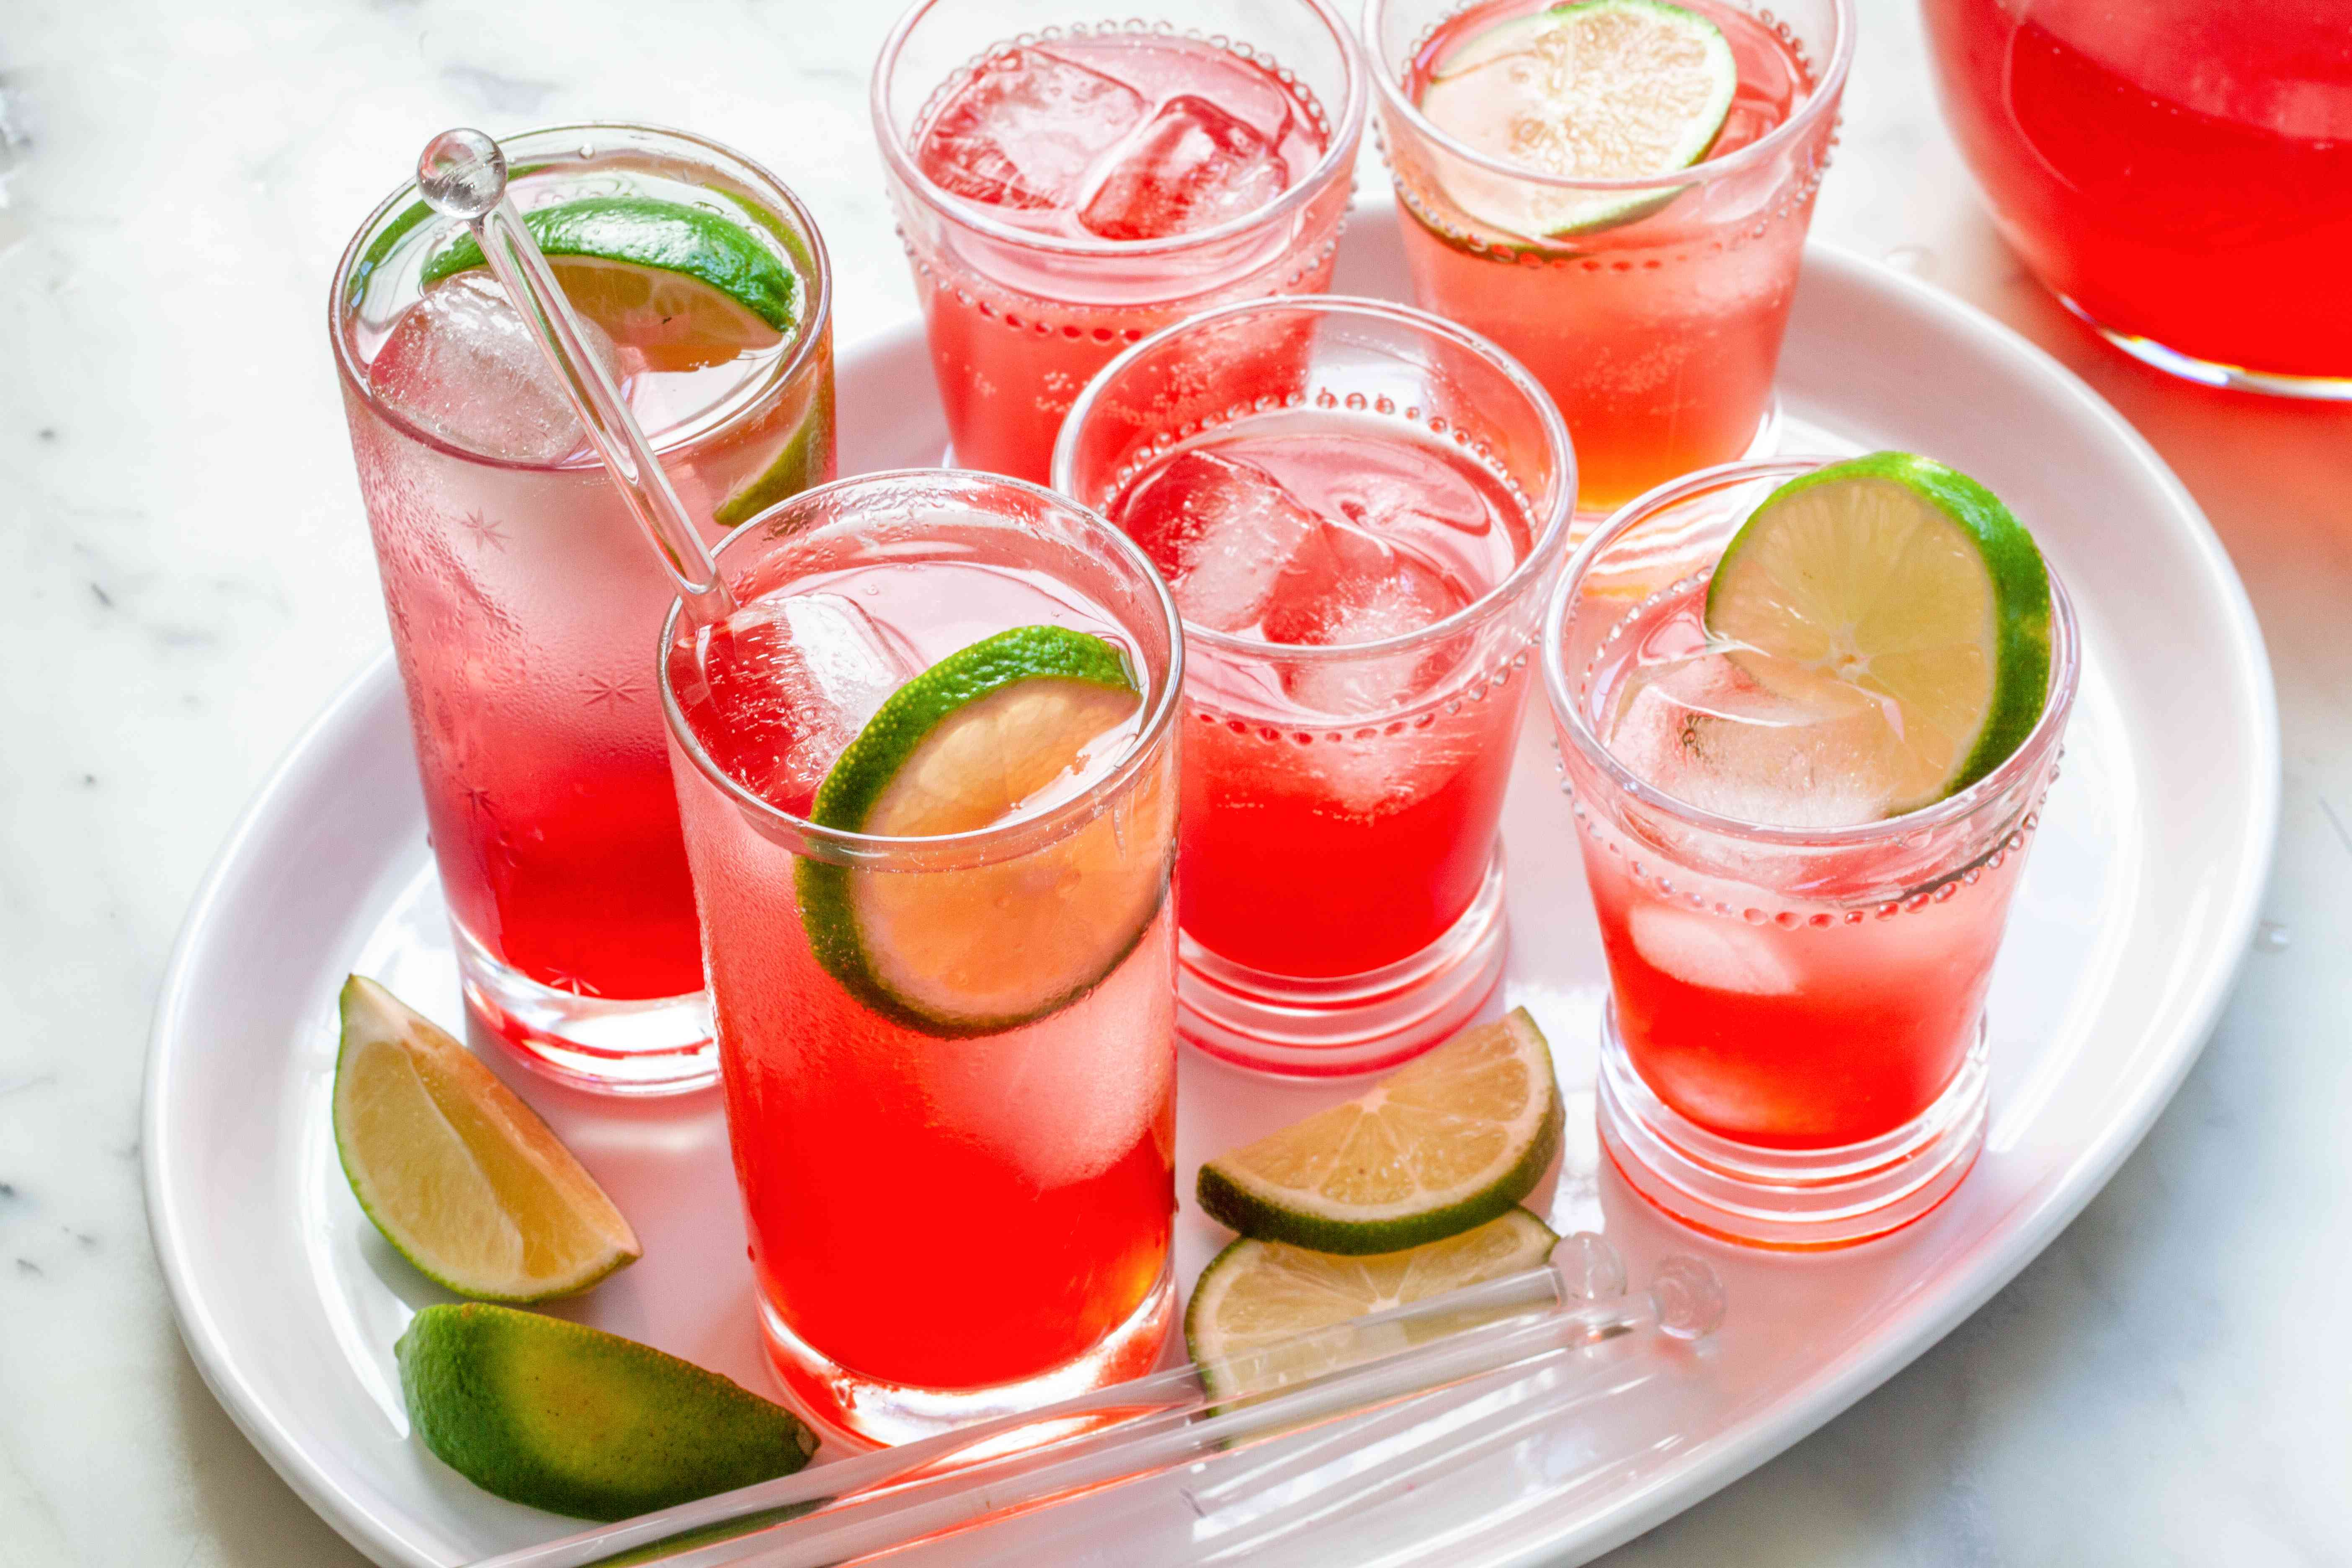 Highball glasses of raspberry lime rickey set on a tray.